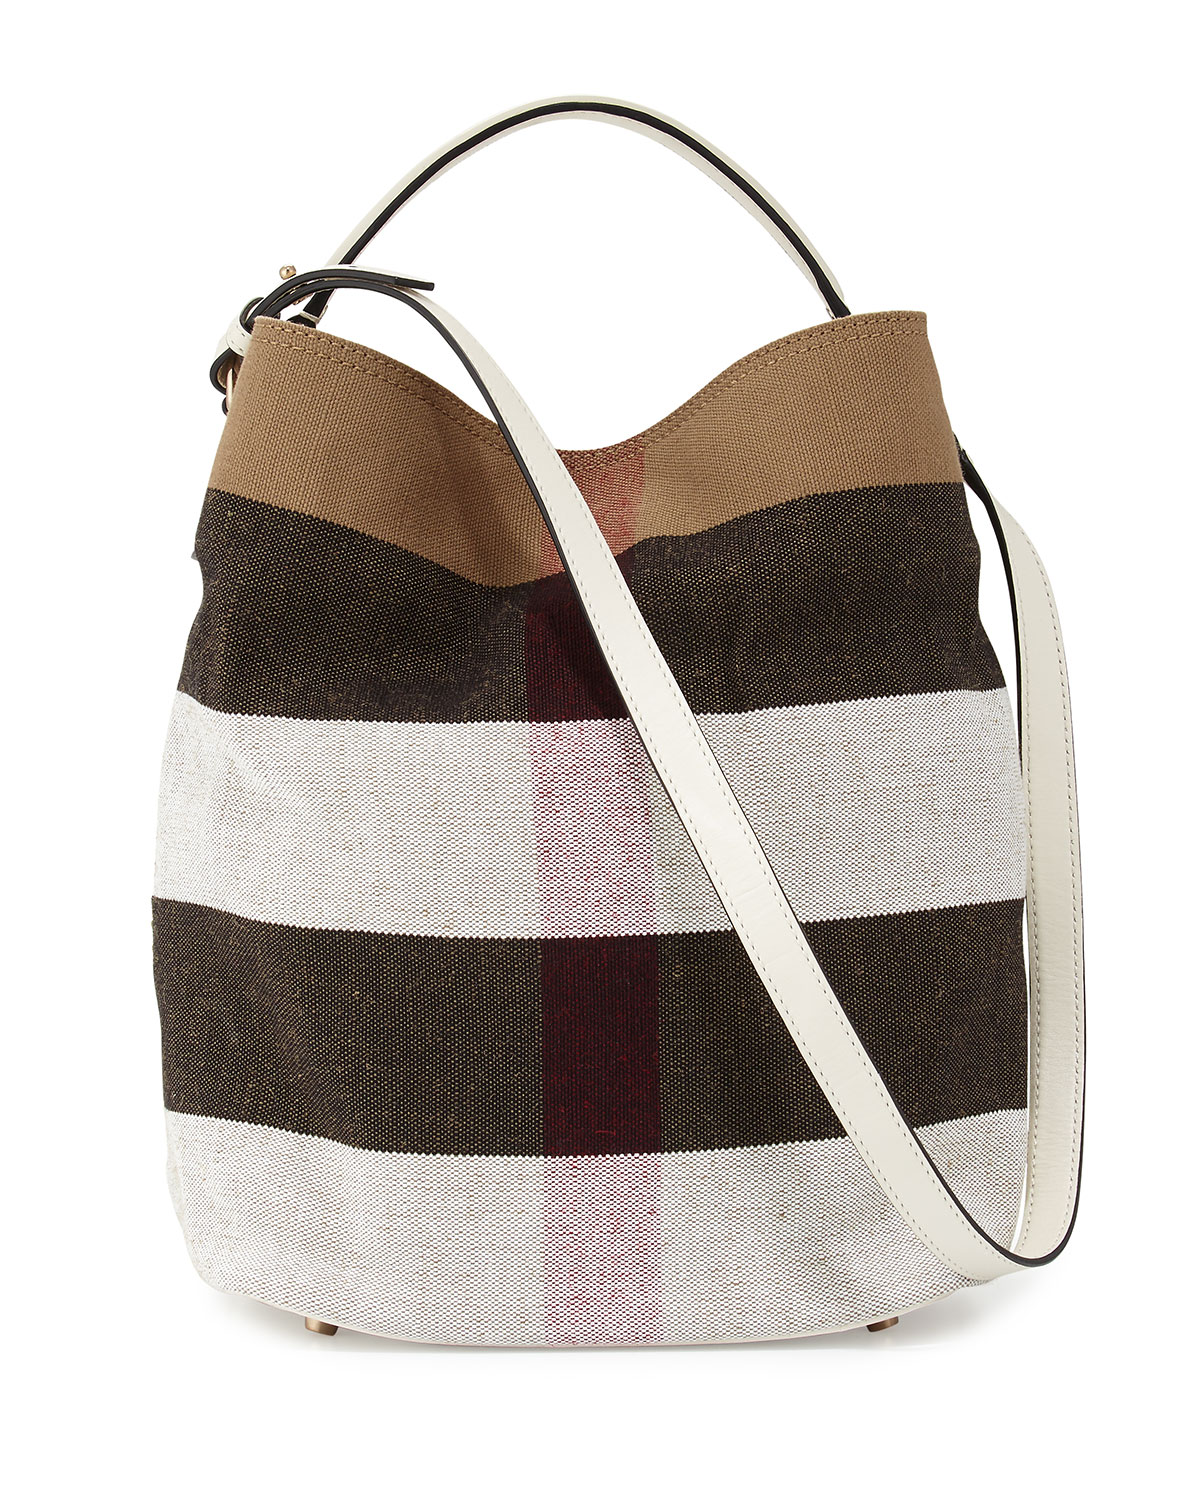 5dc8fde89065 Burberry Ashby Medium Mega Check Bucket Bag